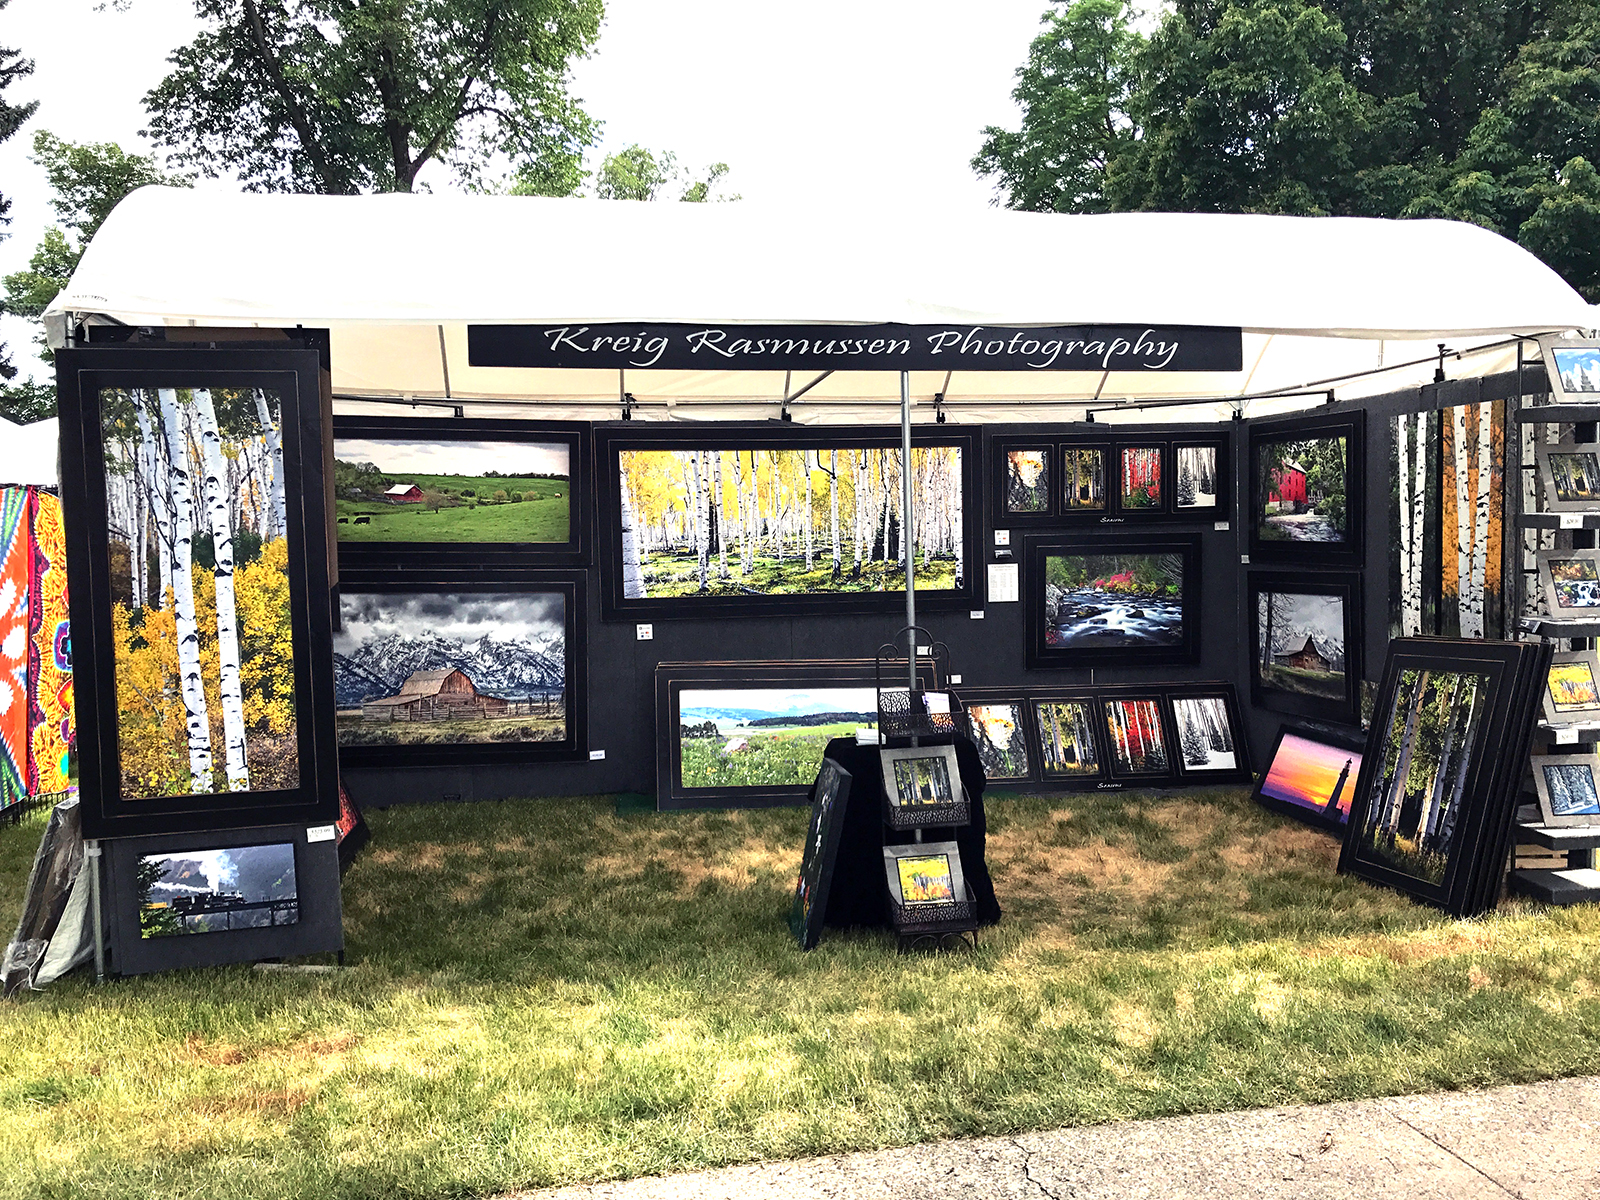 """Our new Light Dome booth allows us to display our large framed artwork. It's 9 feet tall. Look for us at the next art show. We will be at Swiss Days 2017 on the very south end of the square next to the main road in the """"A"""" section. Come see us on Labor Day weekend in Midway, Utah."""